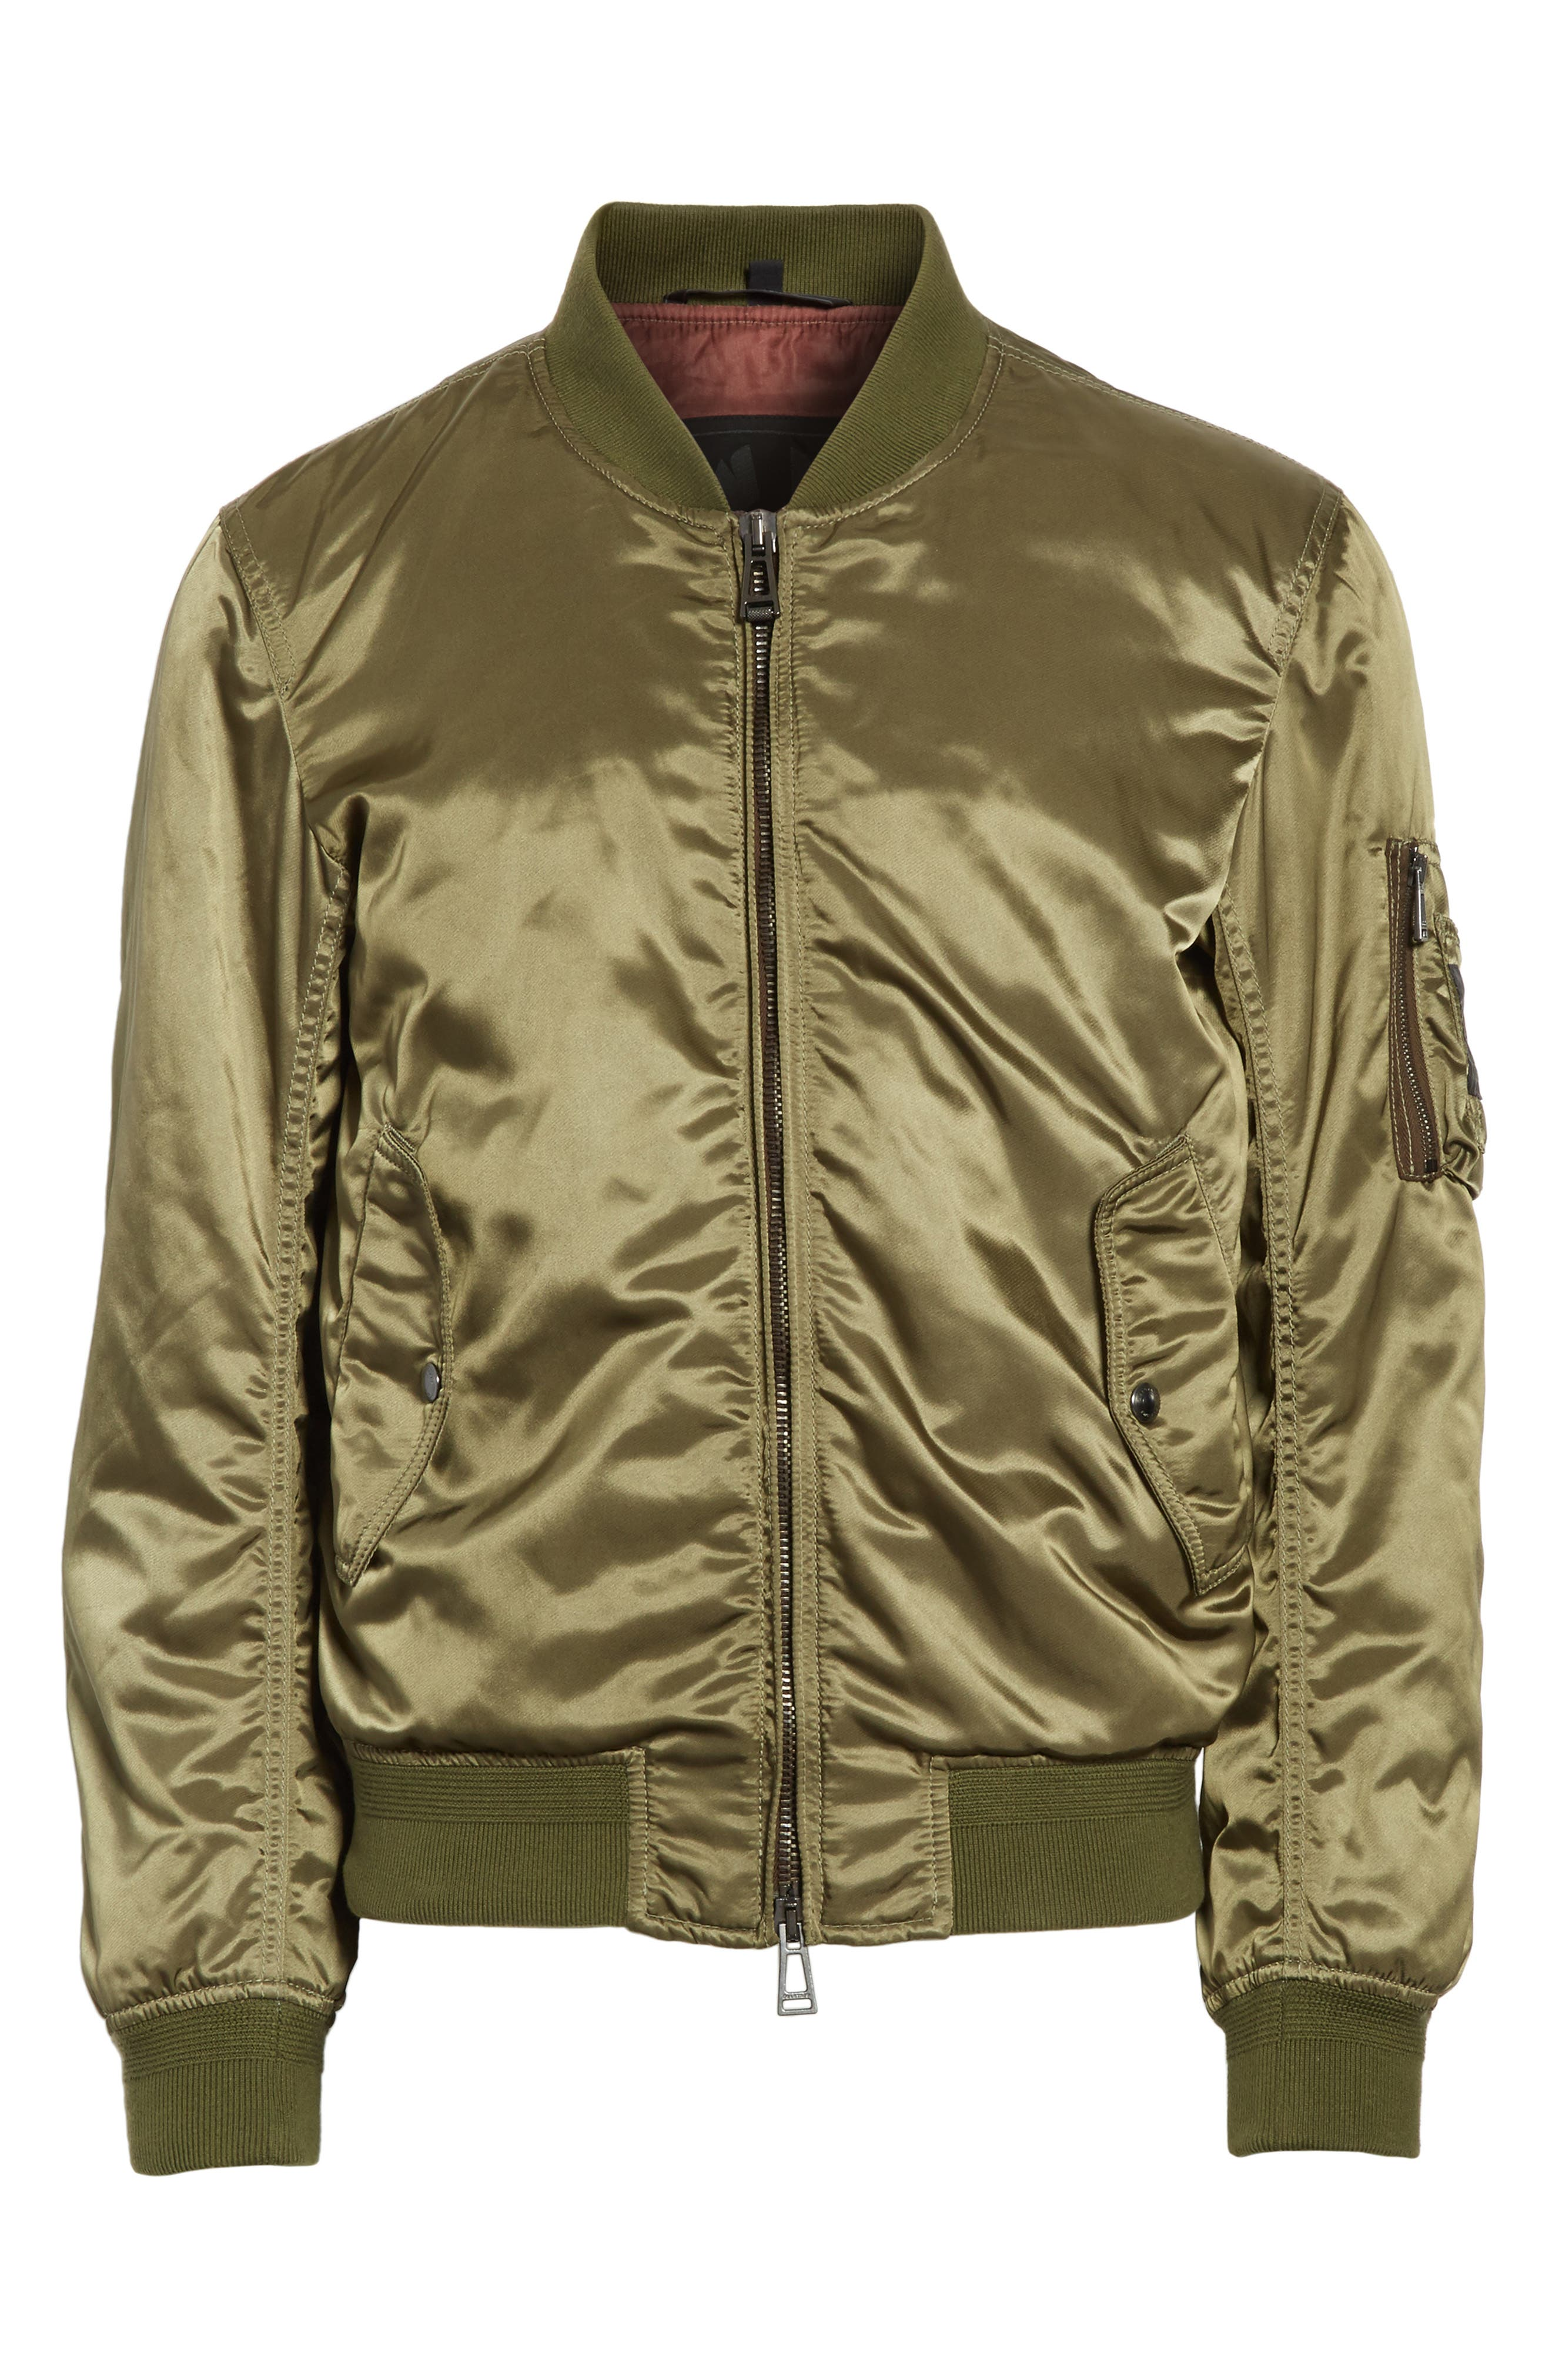 Washburn Bomber Jacket,                             Alternate thumbnail 5, color,                             330